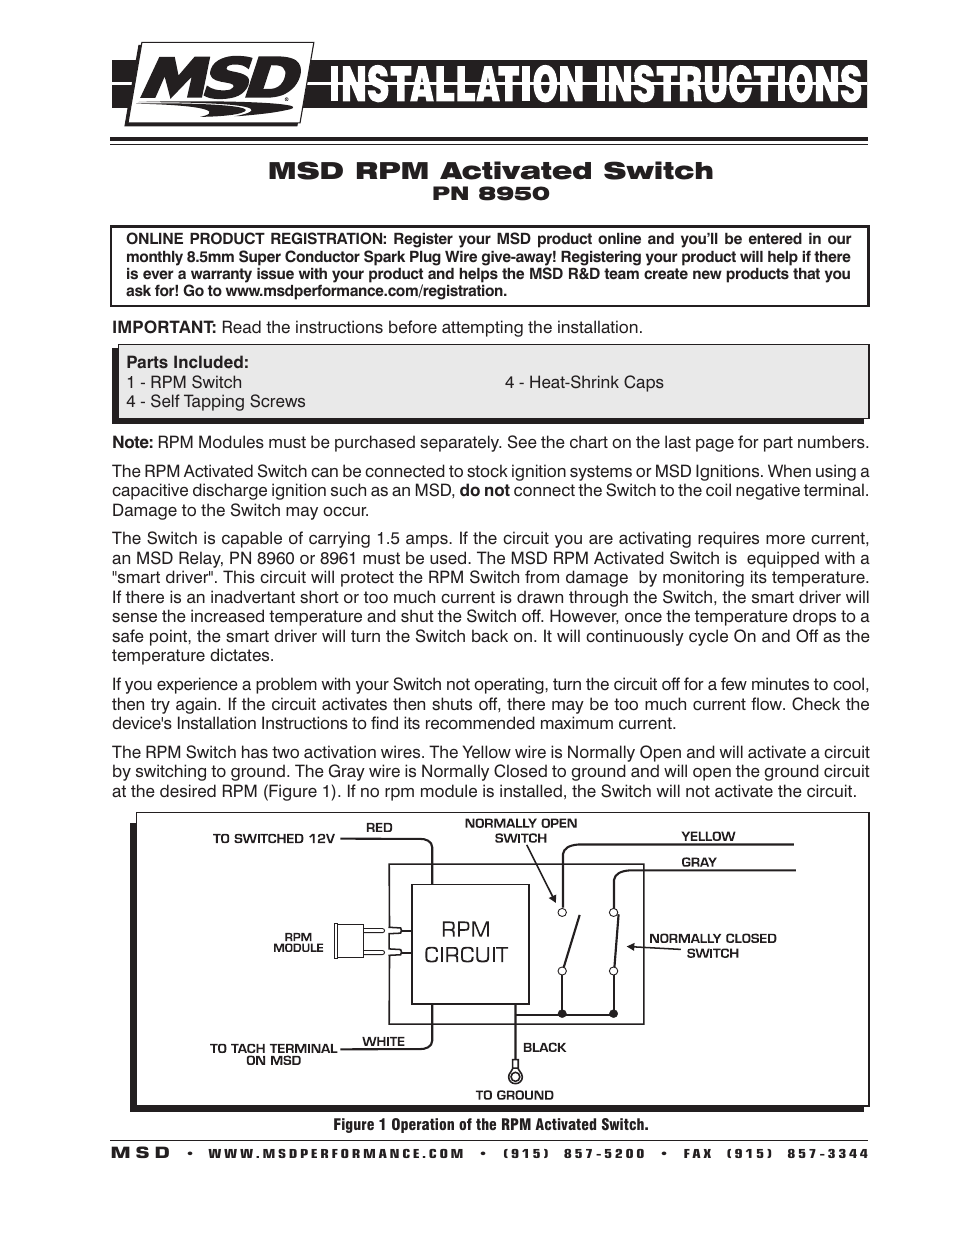 wiring diagrams msd ignition 8950 buy msd rpm activated switches at msd 8950 wiring diagram wiring diagrams second wiring diagrams msd ignition 8950 buy msd rpm activated switches at